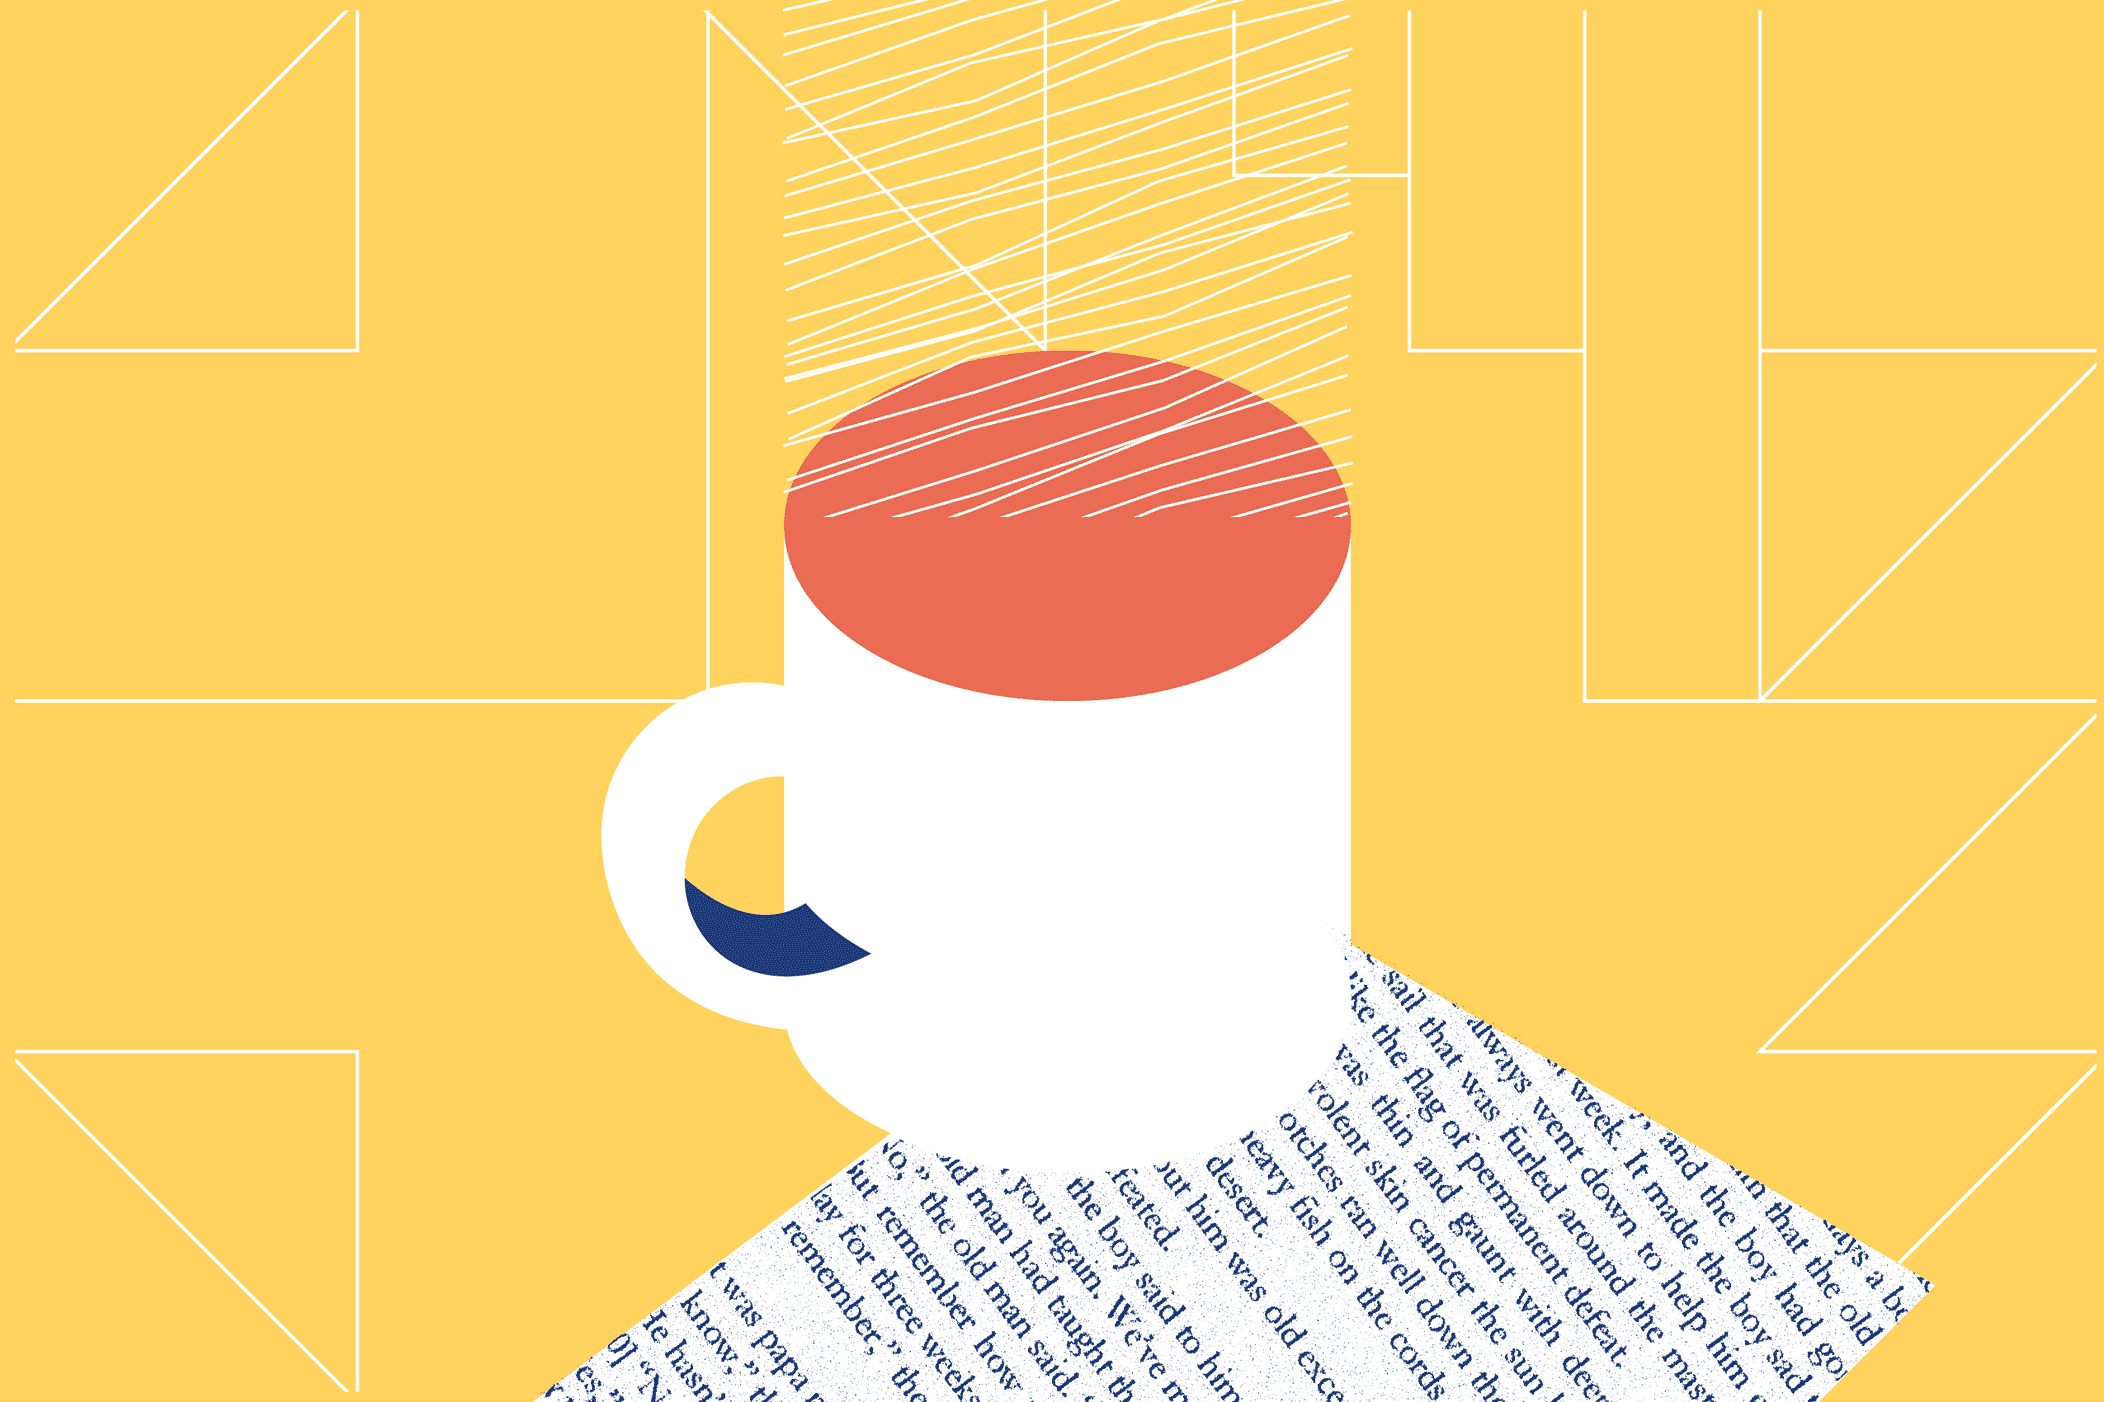 Illustrated cup of coffee holding newspaper underneath in place.